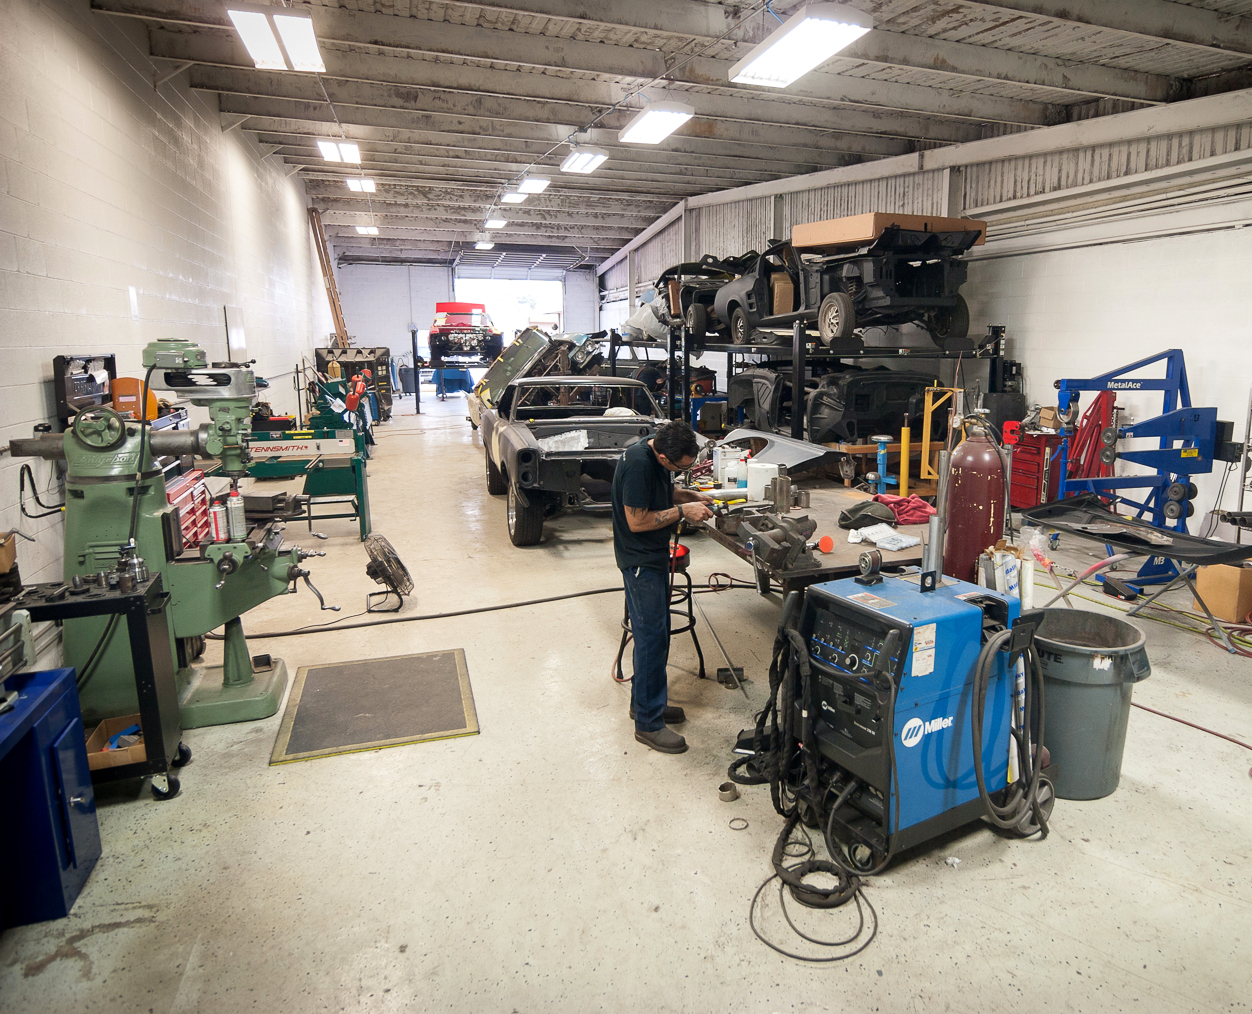 With our fabrication facility and staff we can build anything you need.